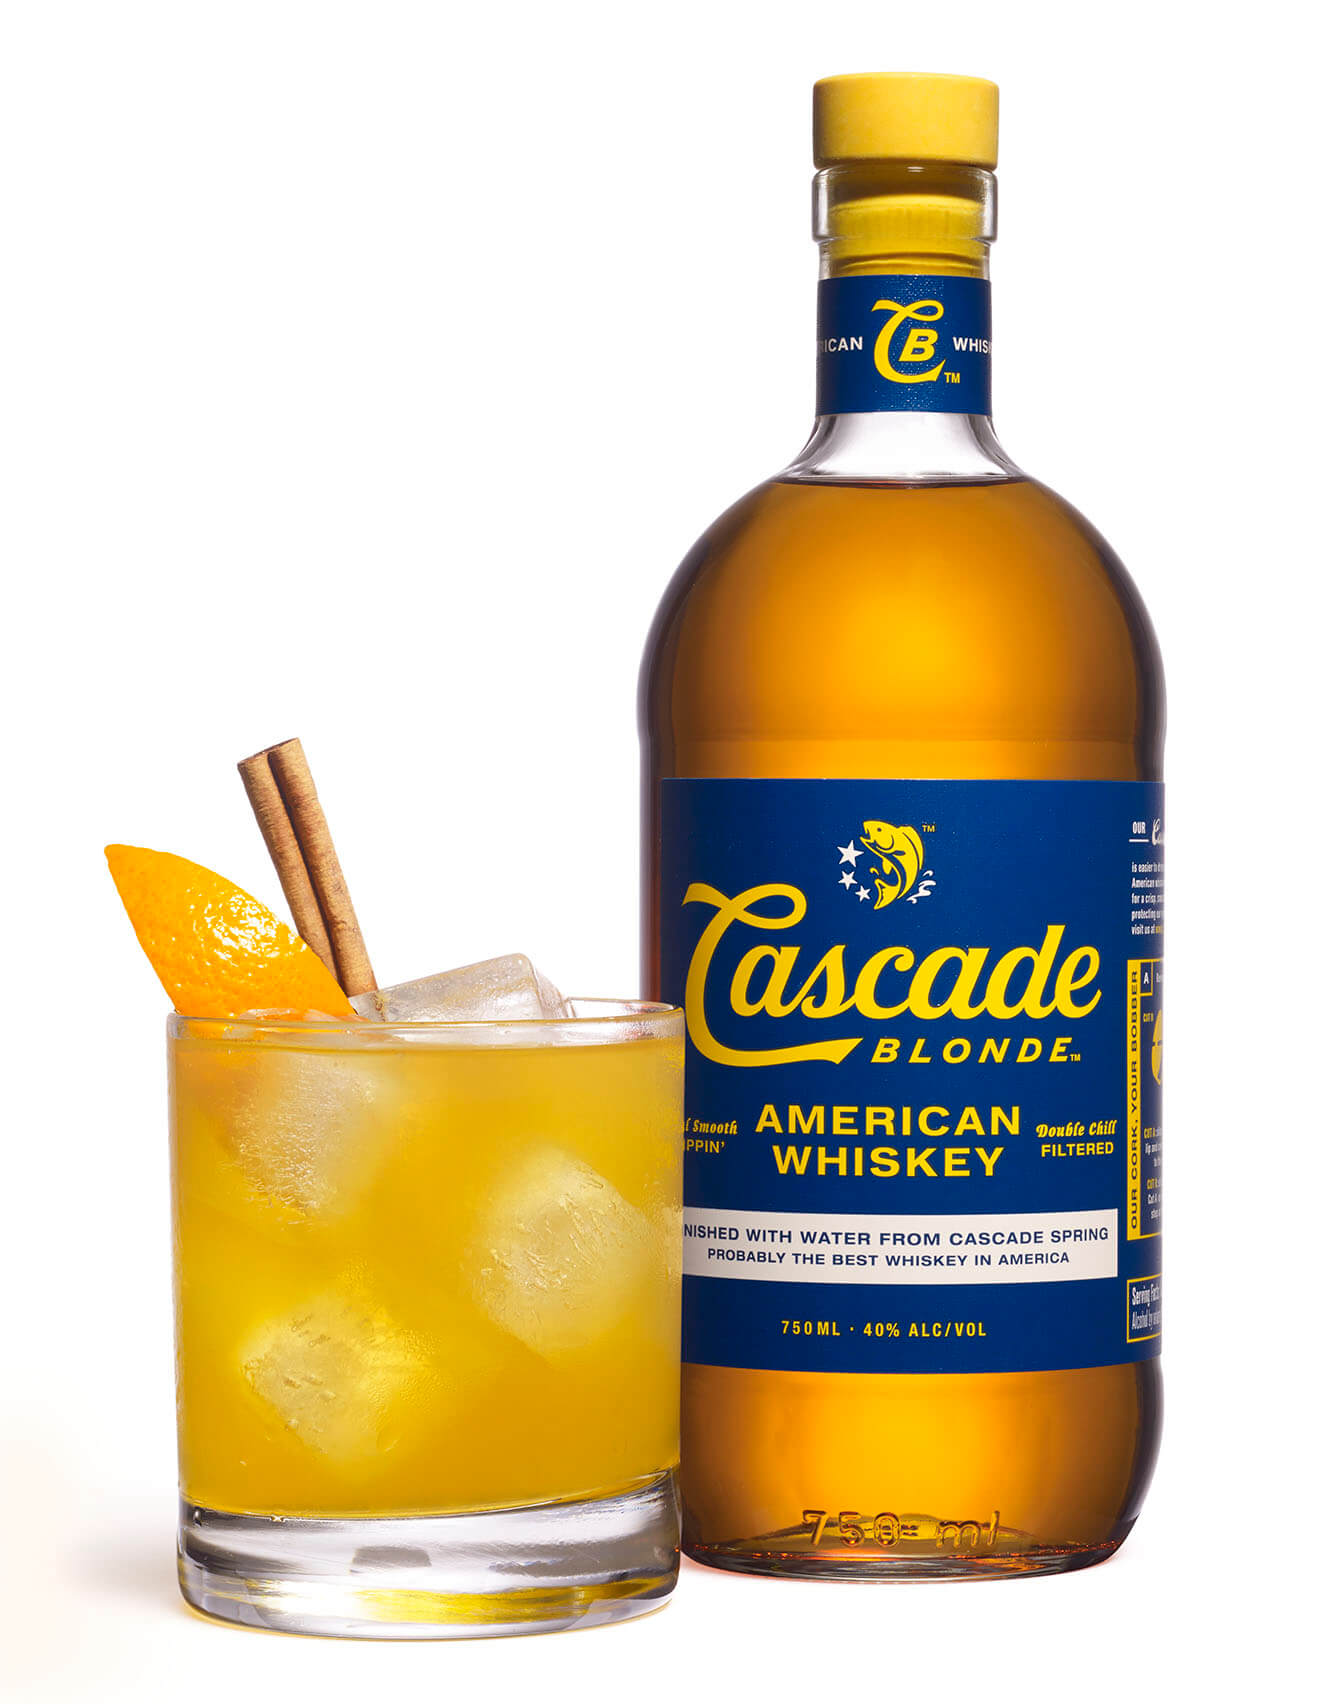 Cascade Blonde American Whiskey